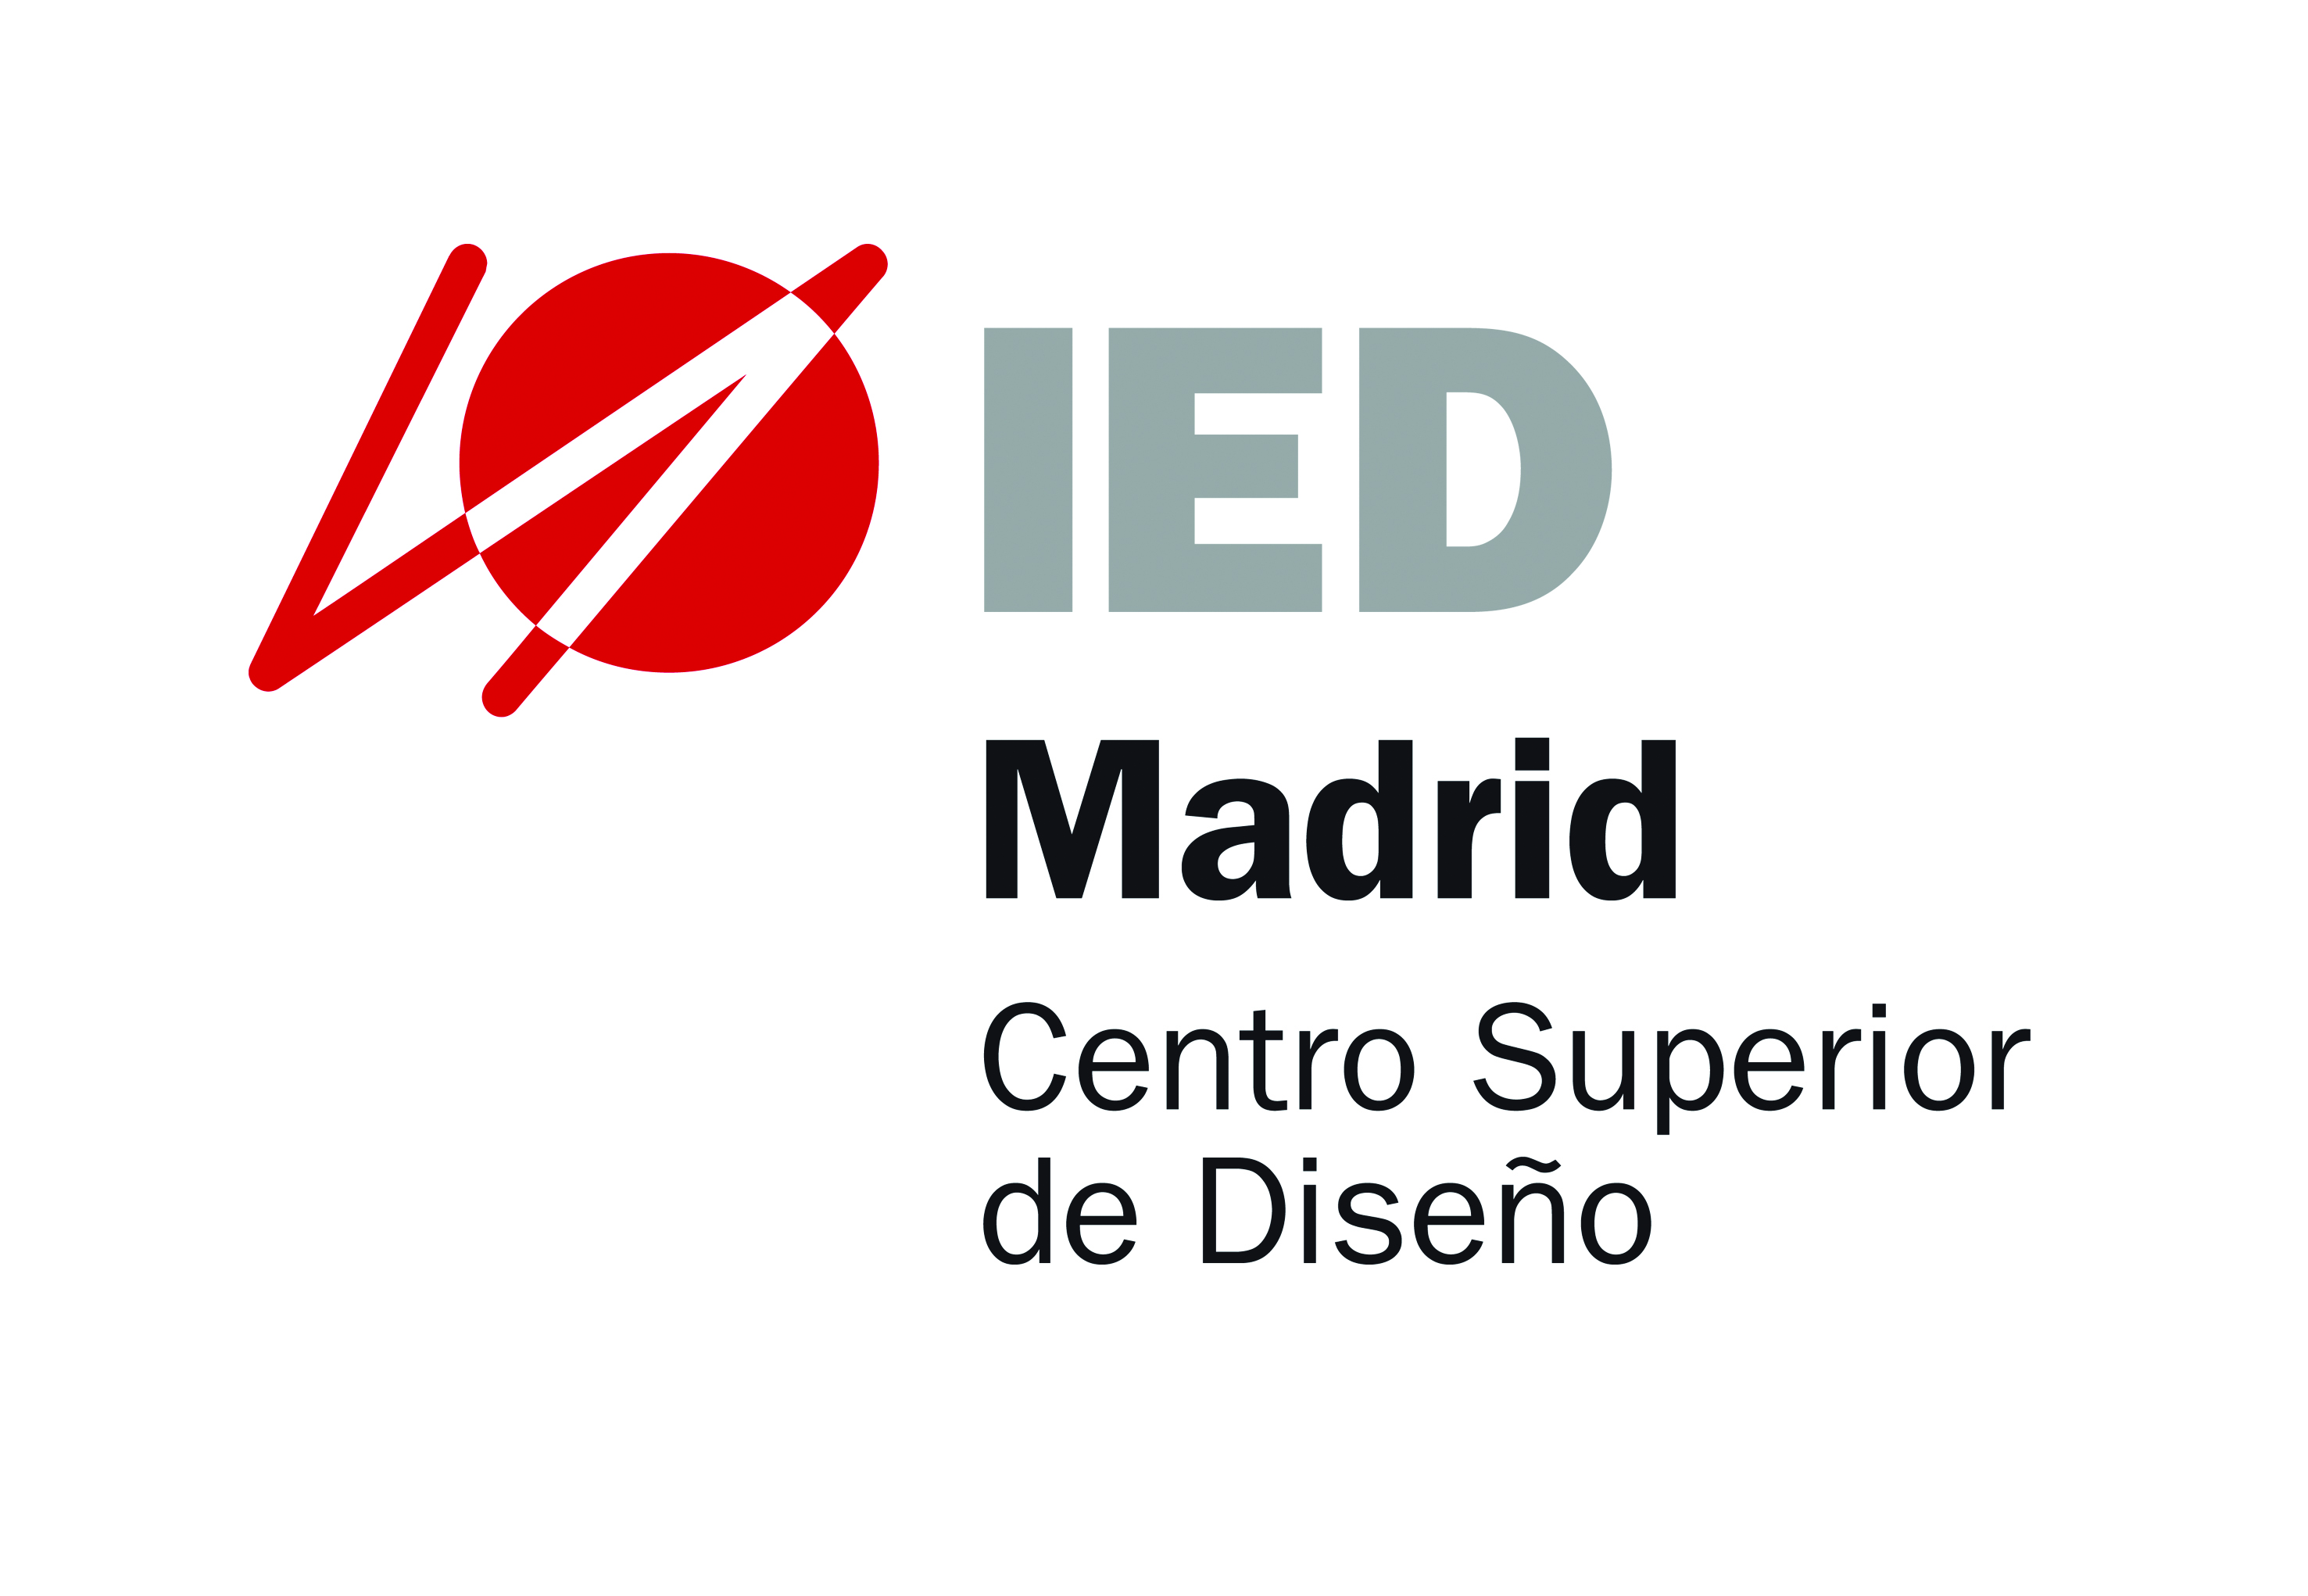 logo_IED_Madrid_color.jpg